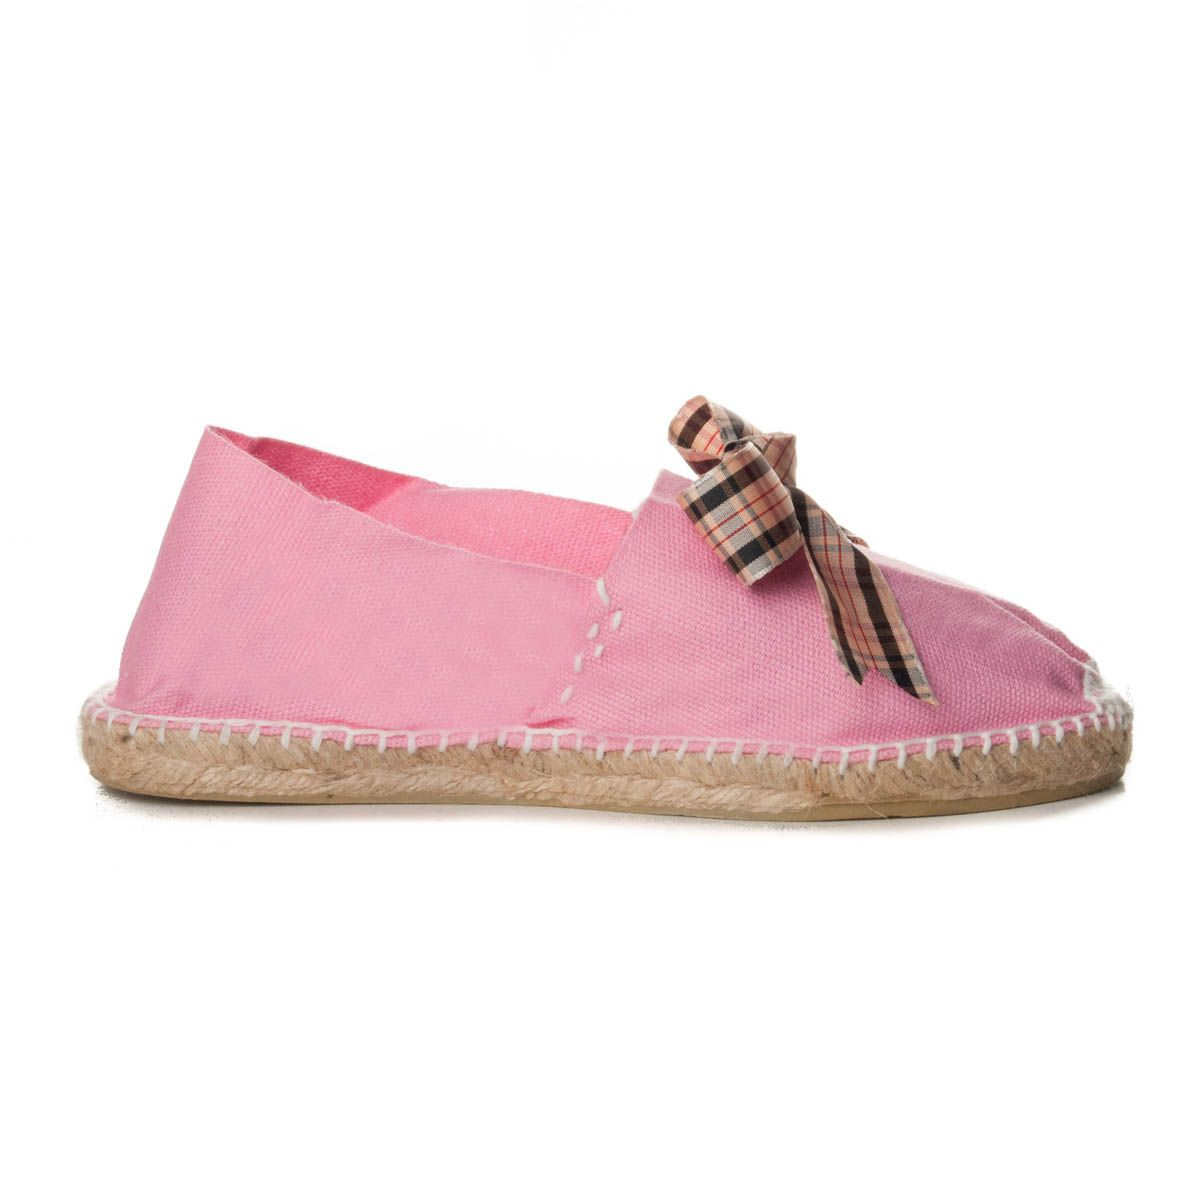 Maria Graor Bow Front Espadrille in Pink